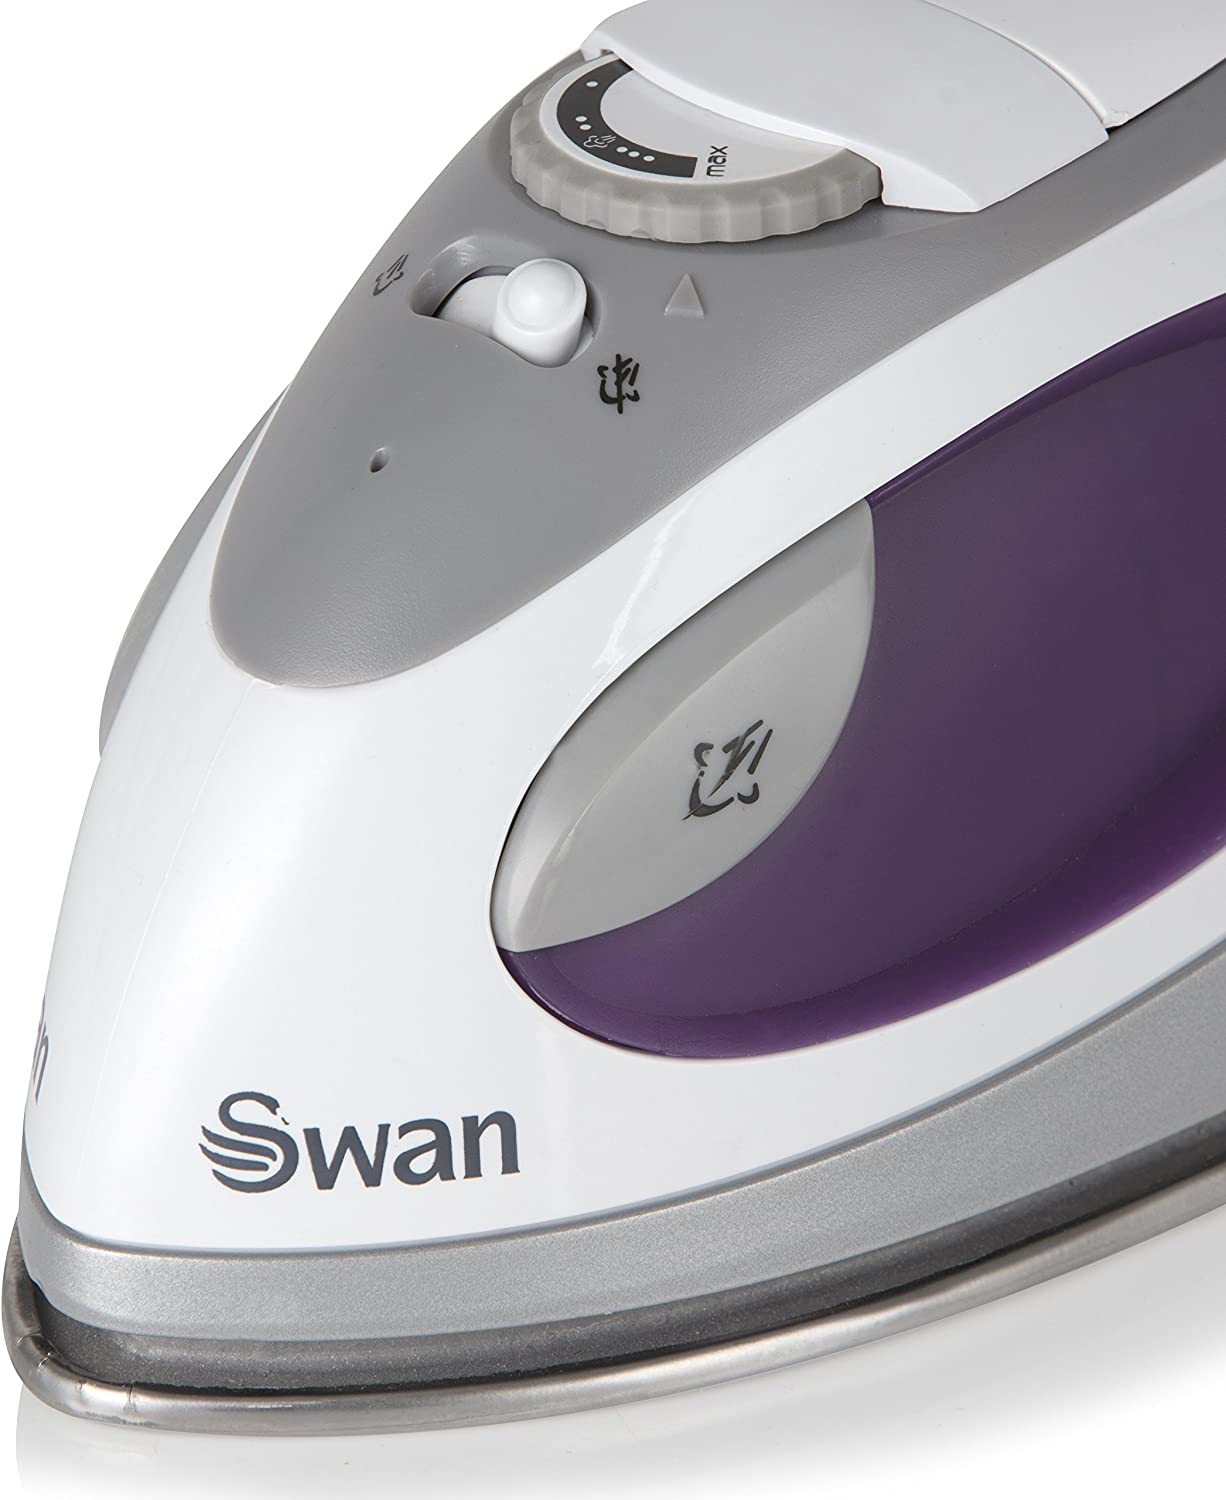 Swan SI3070N Compact Fast Heat up Steam Travel Iron with Pouch and Beaker Purple Variable Temperature Control 900W